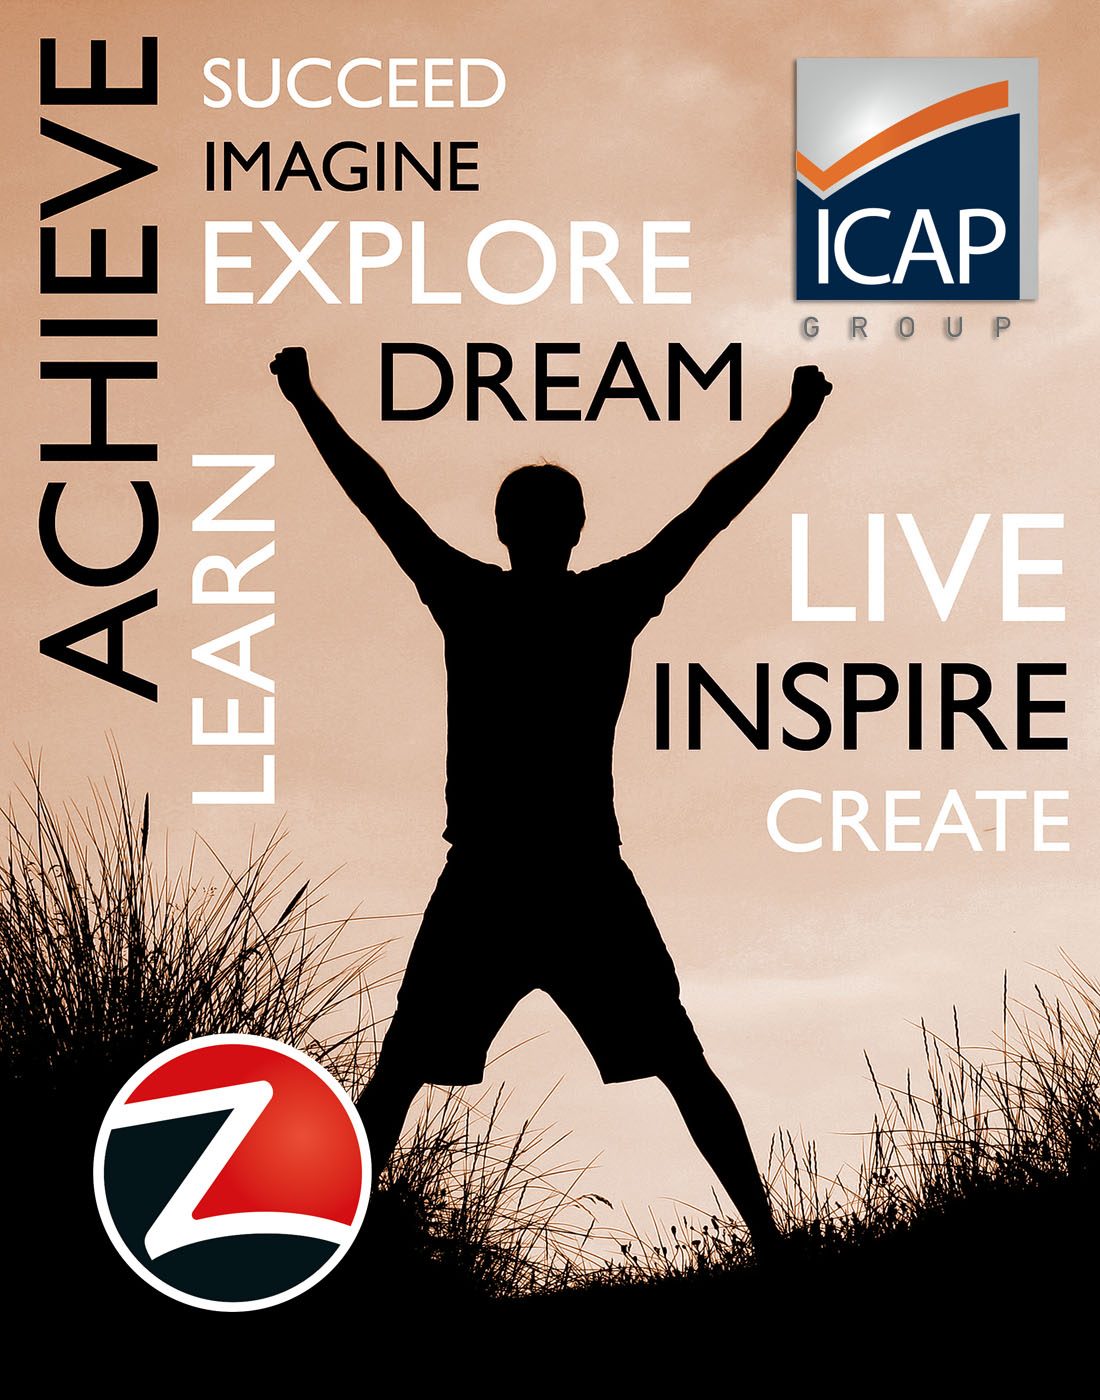 icap-success